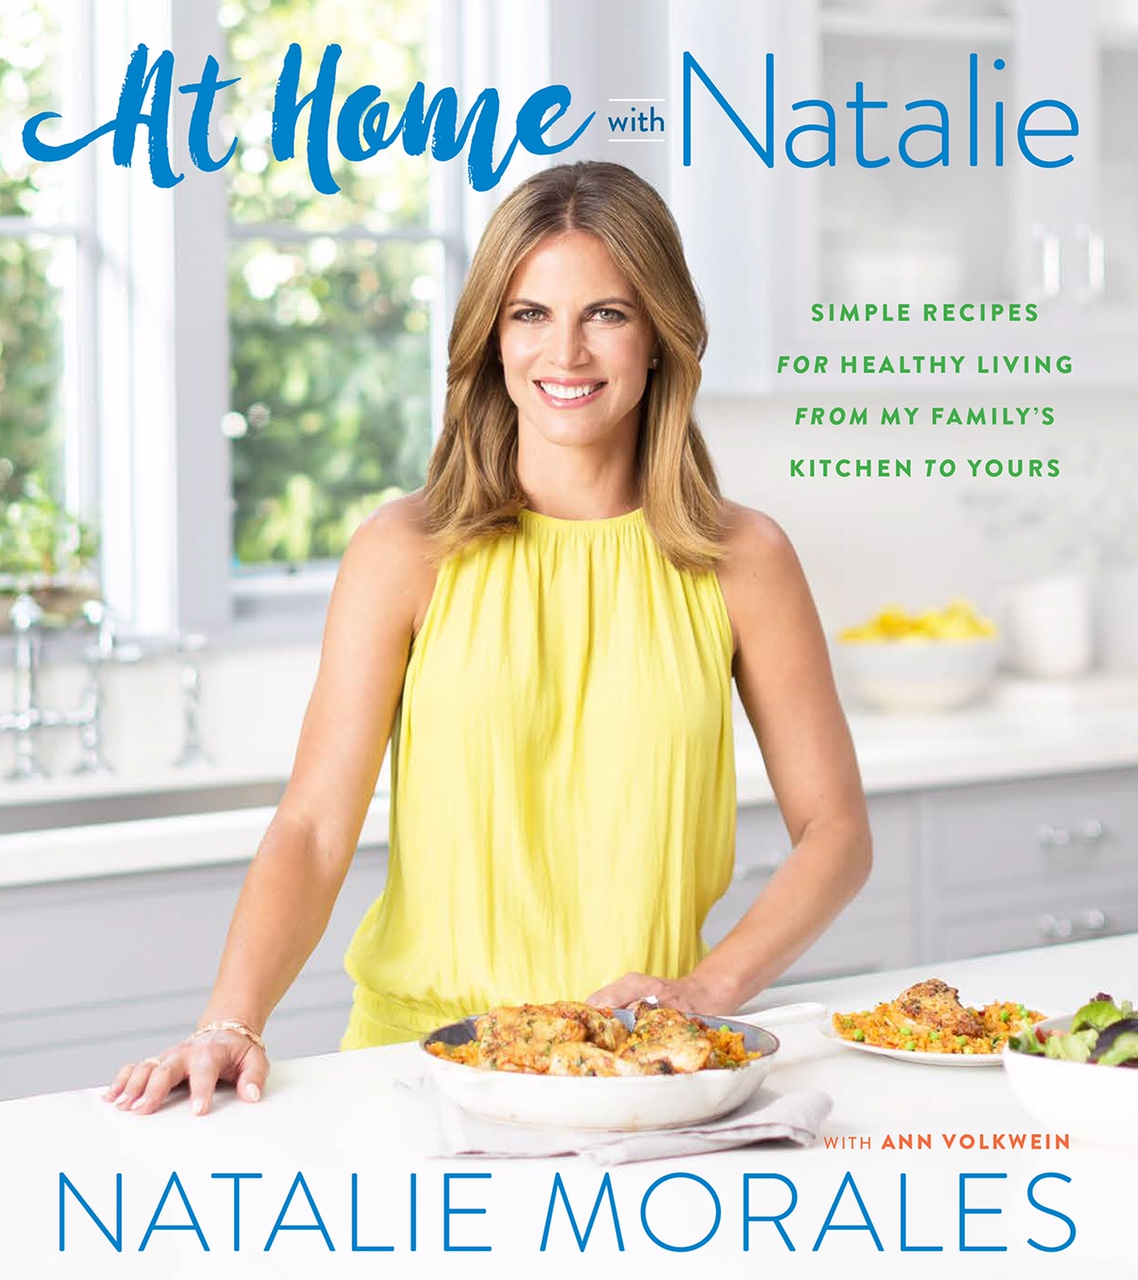 Access-Natalie-Morales-Shares-Recipes-From-Her-Cookbook-At-Home-With-Natalie-Simple-Recipes-for-Healthy-Living